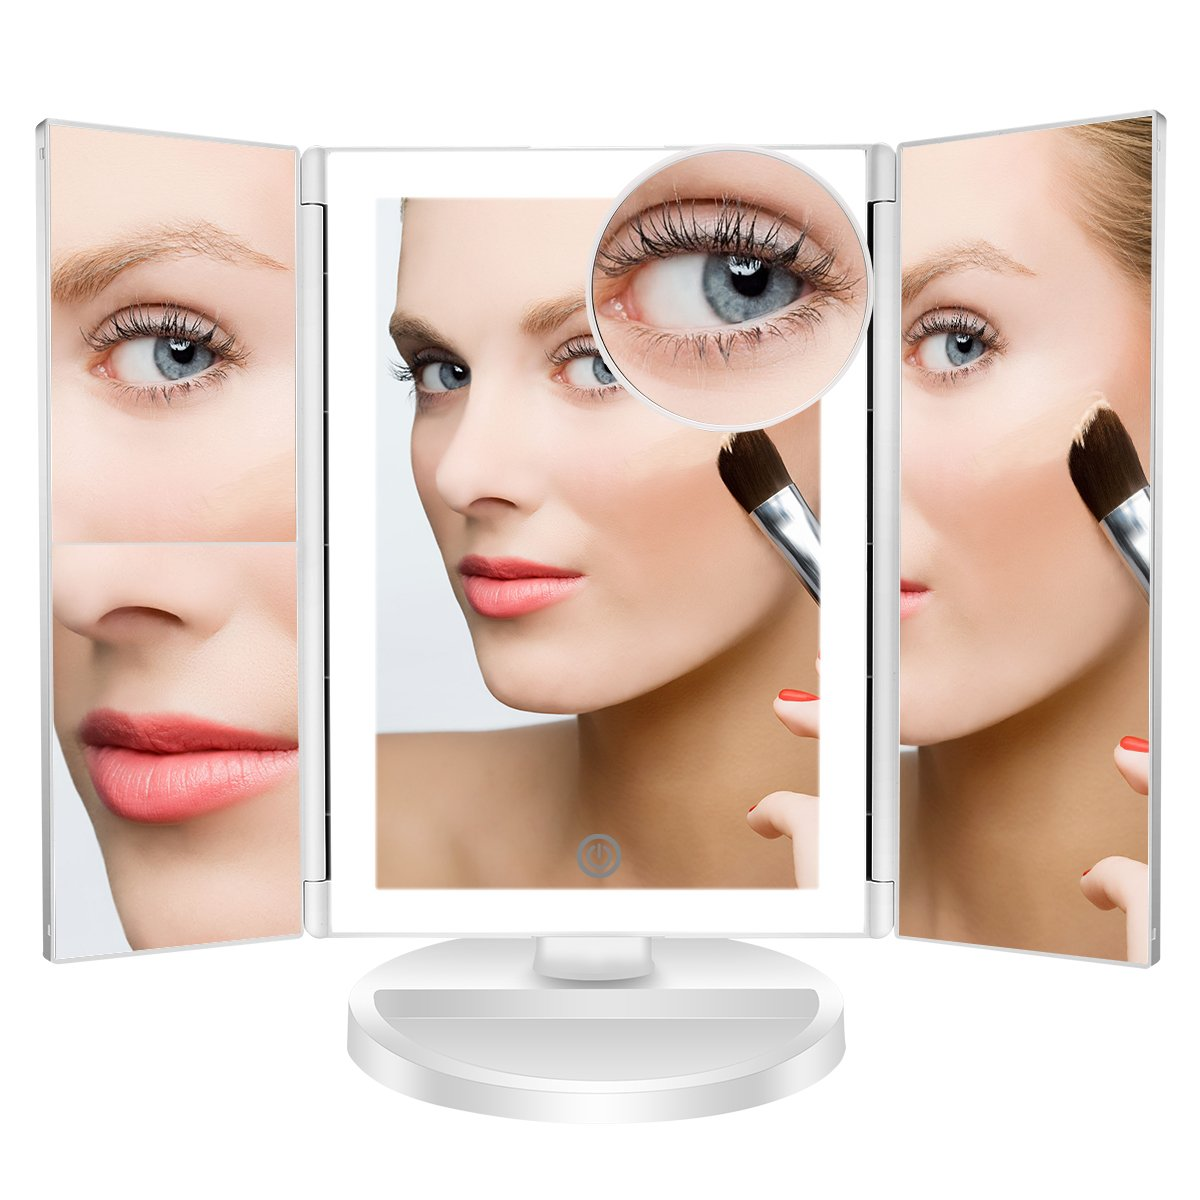 Vanity Mirror,Livememory Lighted Vanity Makeup Mirror with 36 LED Lights for Women,10X 3X 2X 1X Magnification Mirror,Electric Dual Power Supply, Portable Clarity Magnifying Mirror